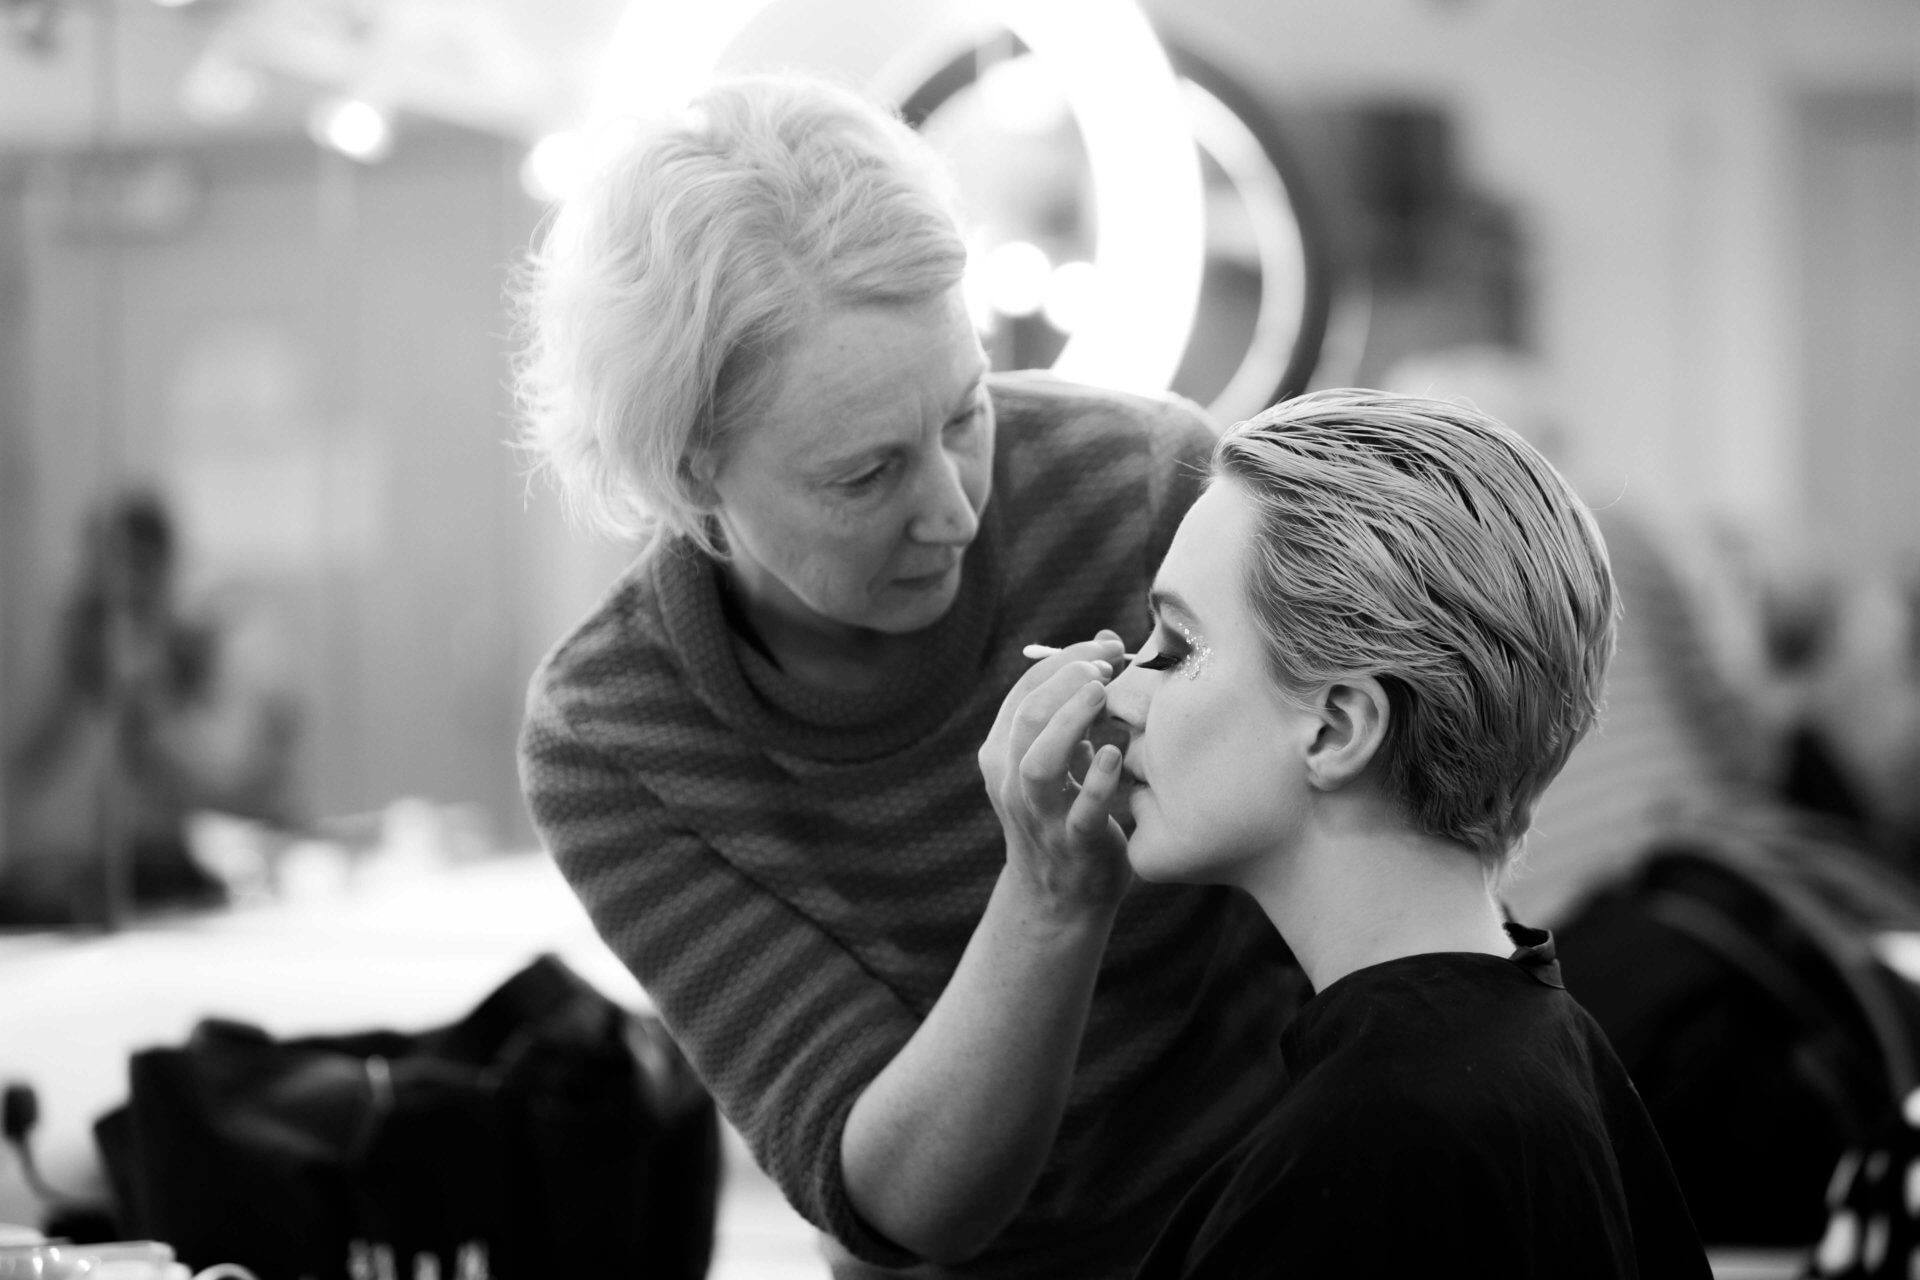 Charlie O'Conor gets her make up on to transform into the Snow Queen